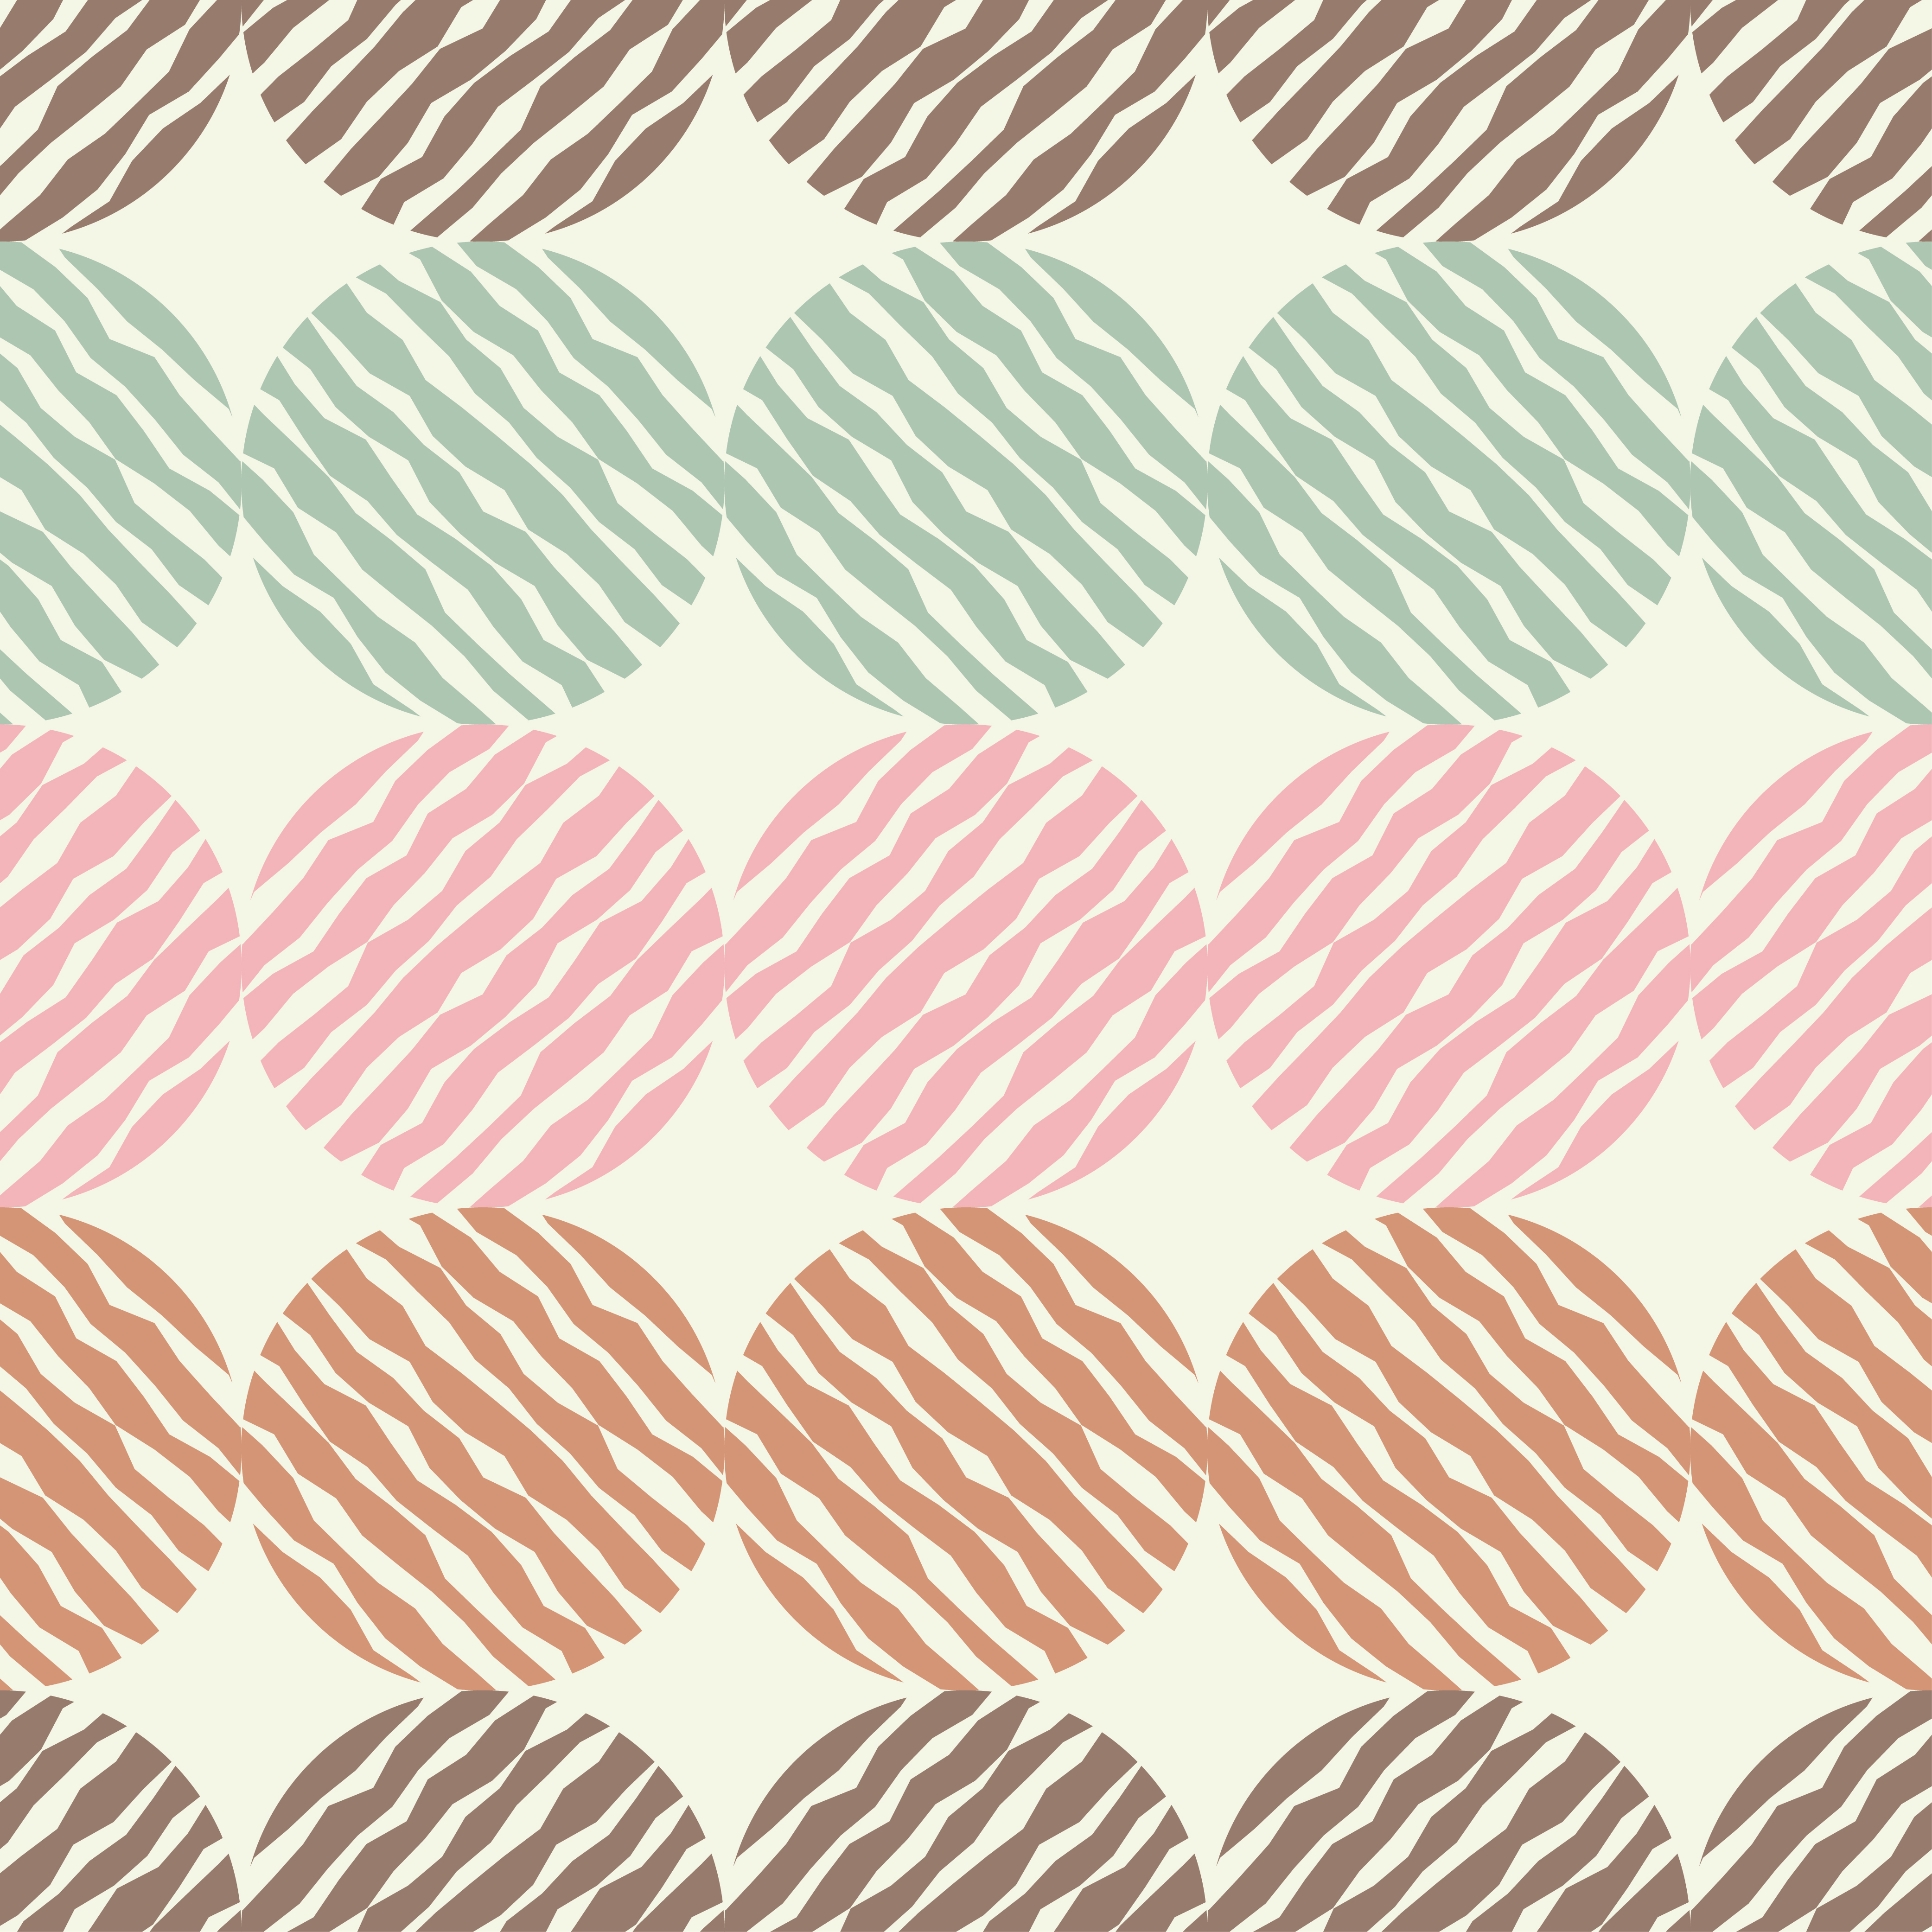 Polka dot seamless pattern. Vector illustration.  example image 1